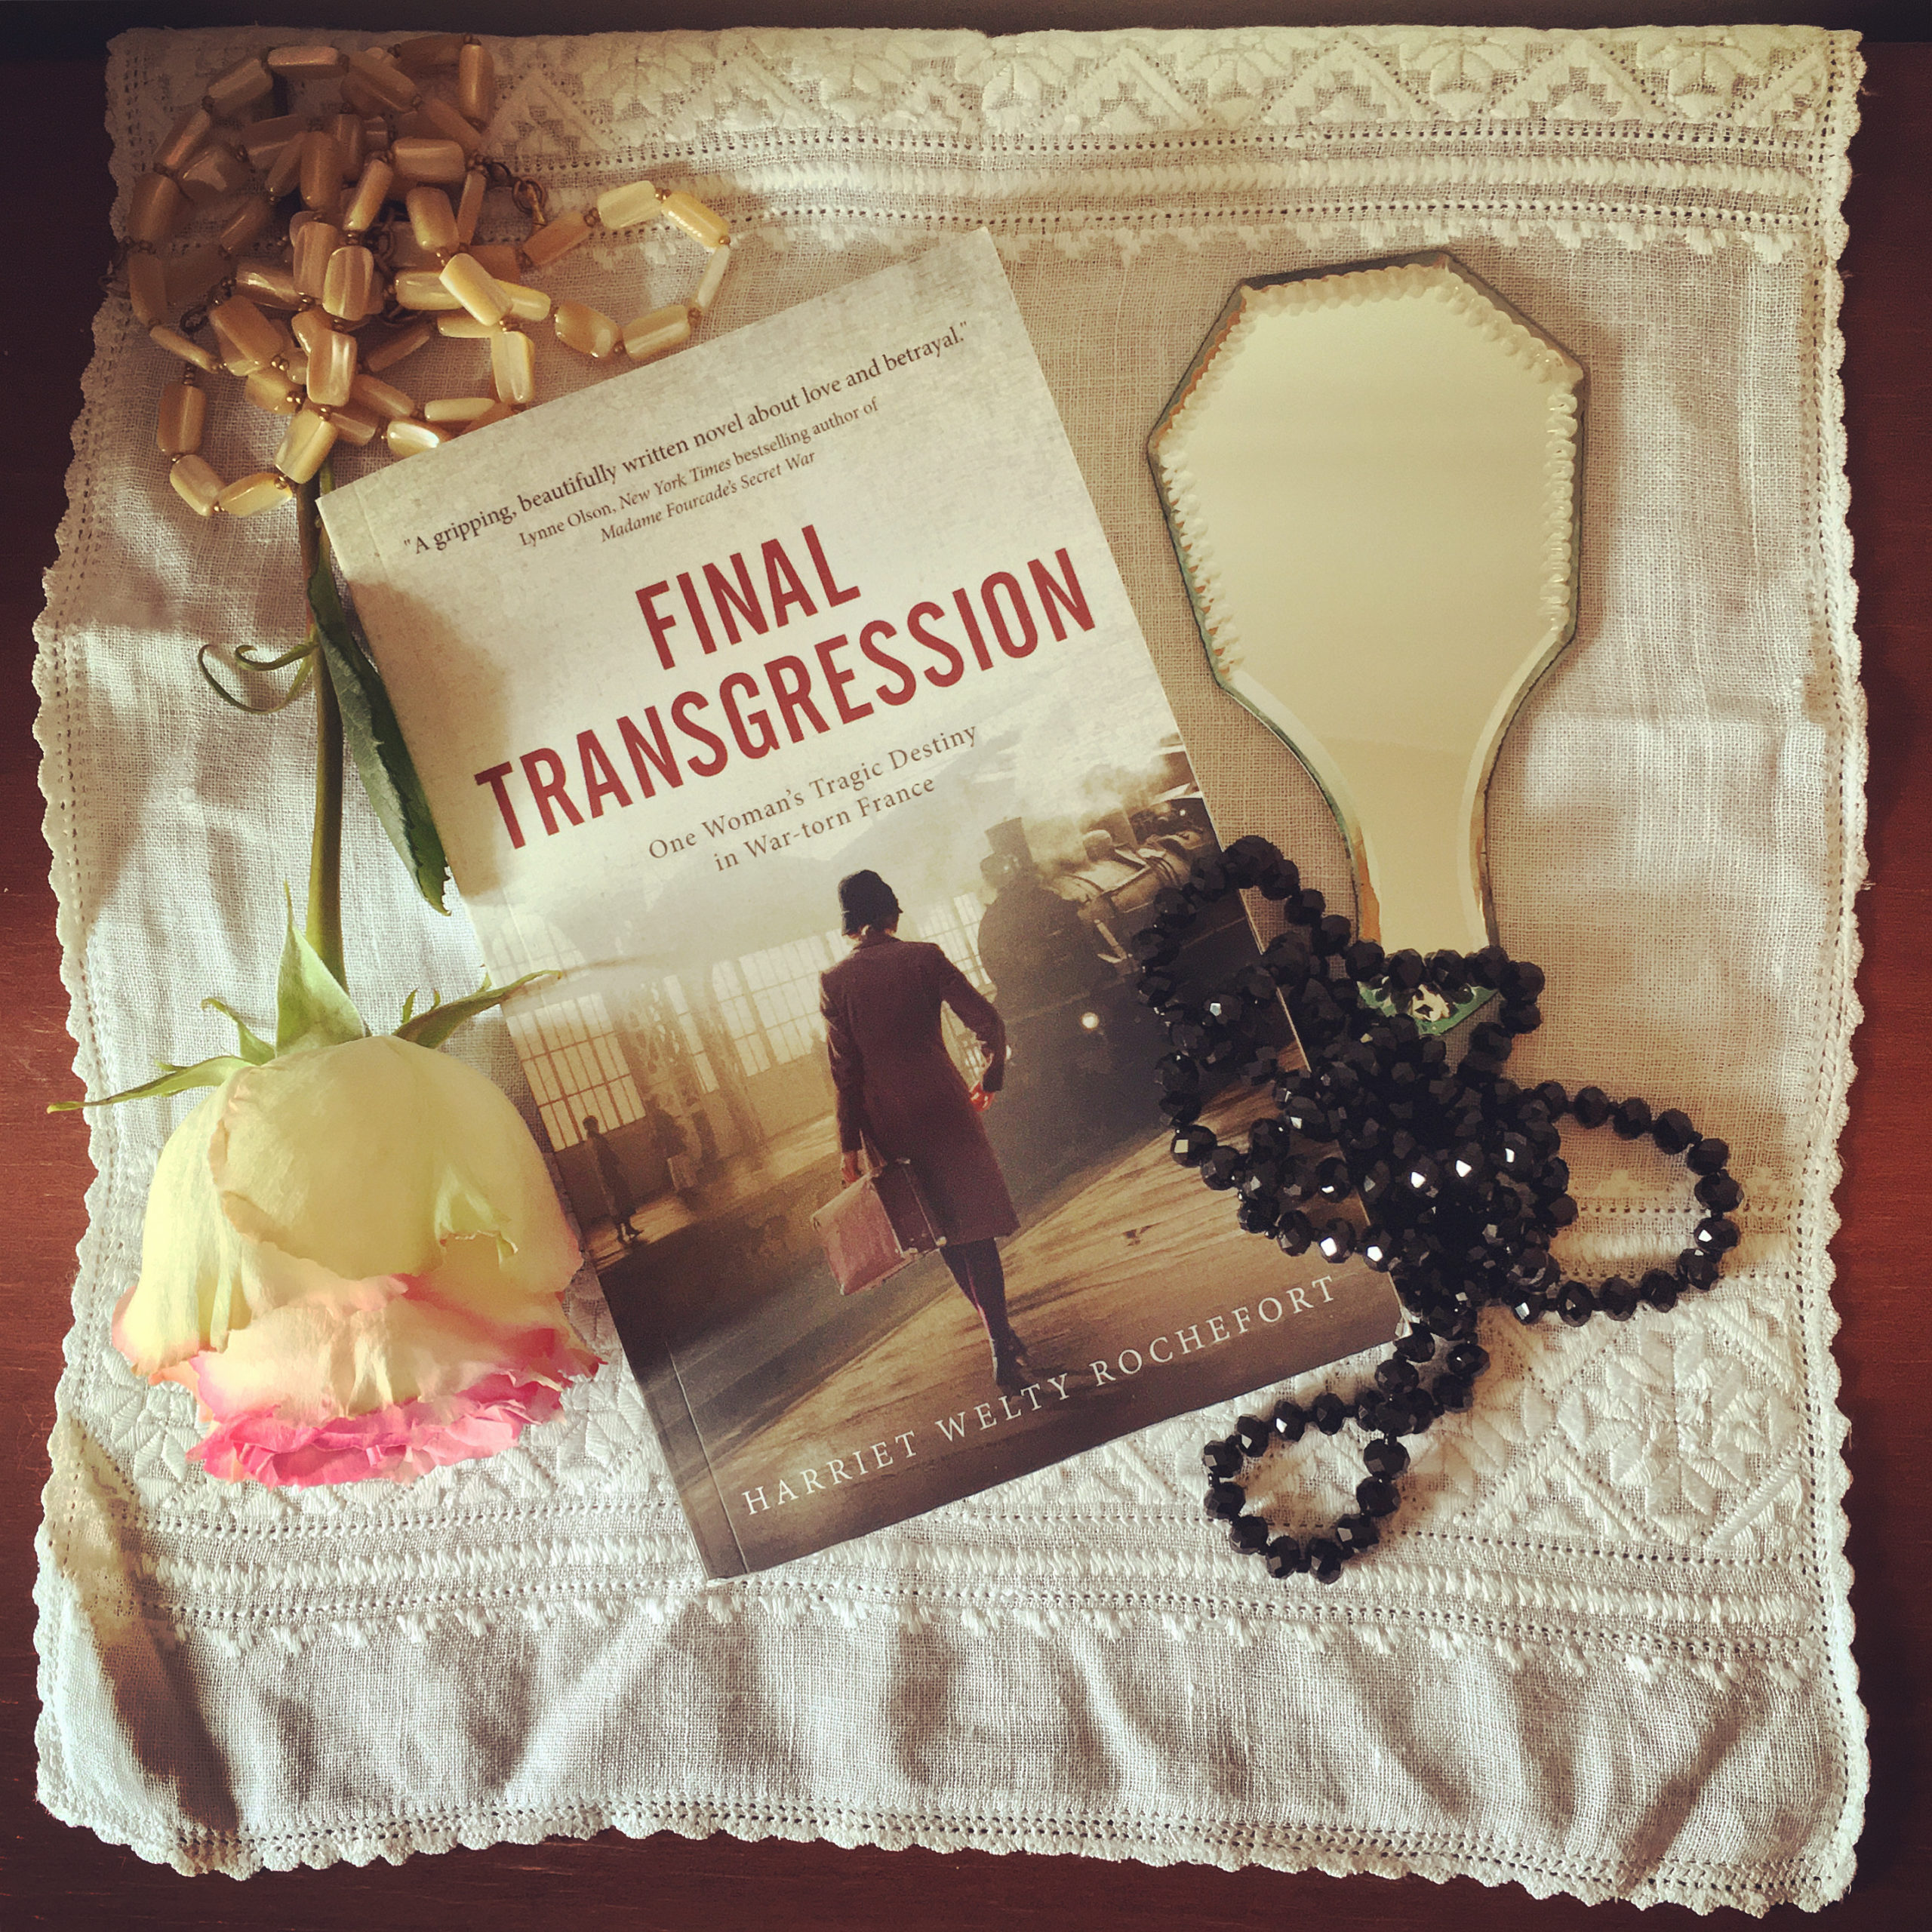 Book Review: Final Transgression by Harriet Welty Rochefort